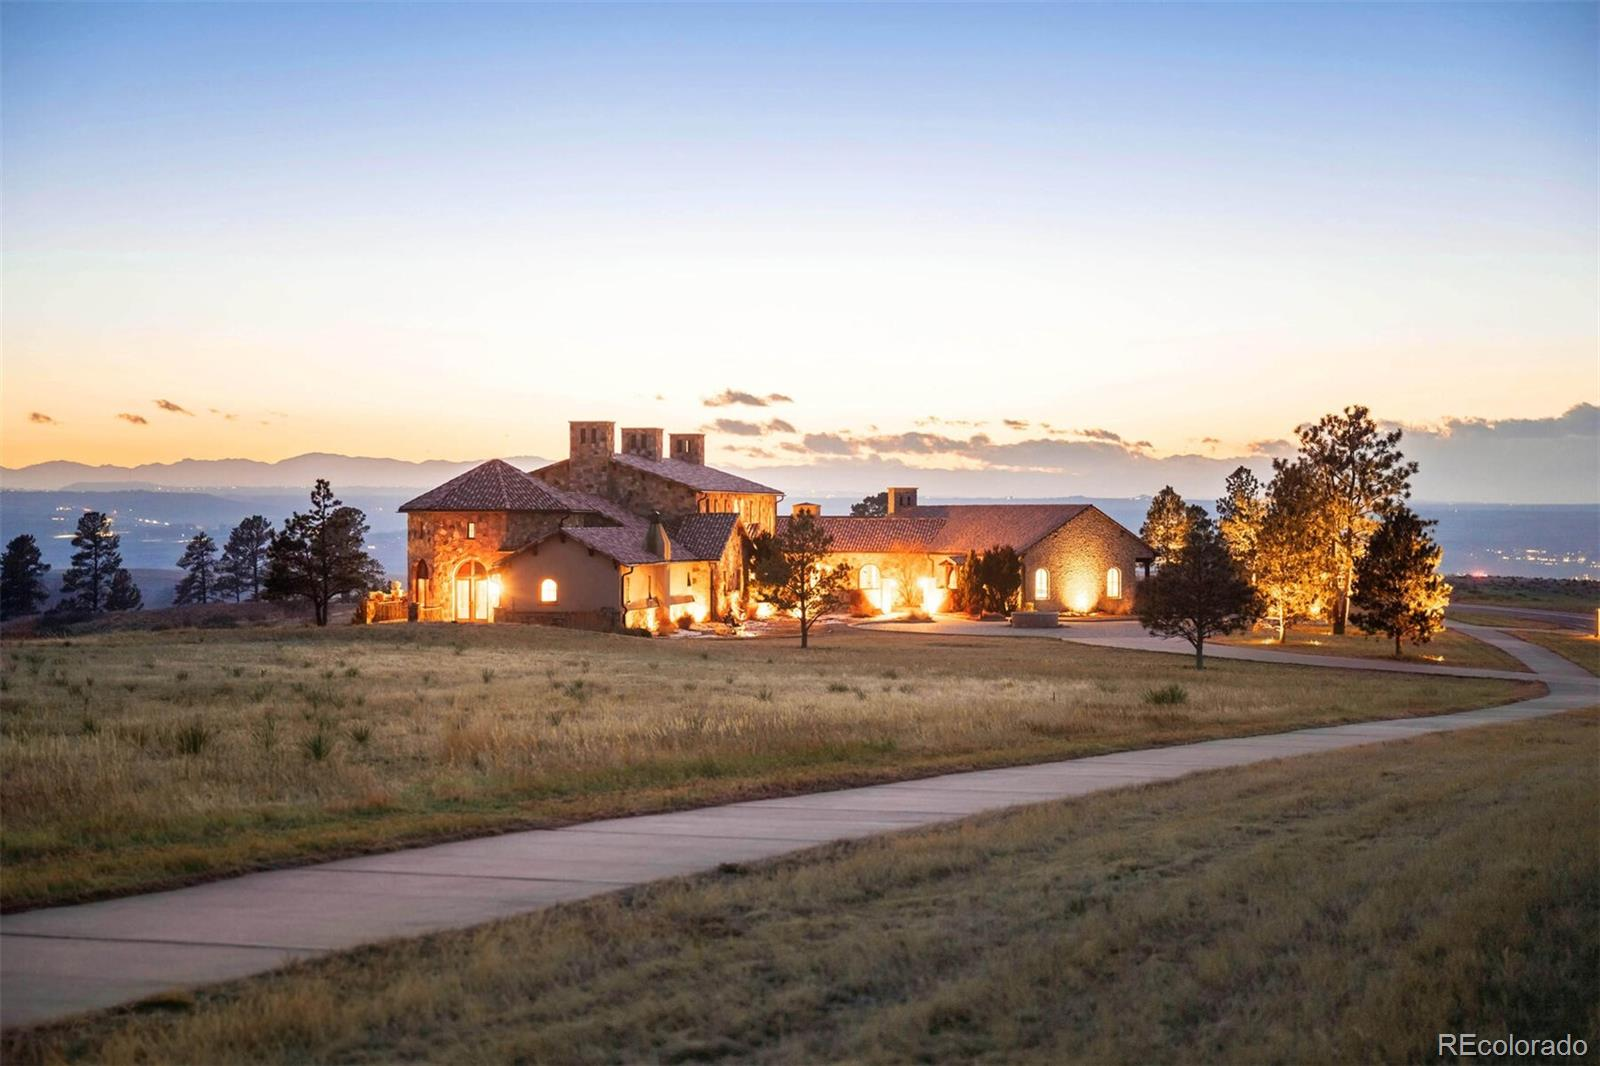 An opportunity to own one of the Signature properties in Colorado Golf Club, at over 16,000 finished square feet, with arguably the most European flair in the Club. The exterior finishes are reminiscent of the estates in Italy. The foyer of this grand estate is similar to entering a resort with art galleries, libraries and custom pieces that are easy to name drop when you realize you are seeing custom work installed by craftsman throughout the home. Names like architect, Don Ruggles, and custom details from John Richards, Guy Chaddick, +more all selected by the keen eye of Rob Osgard, Interior Designer with Howard Lorton who worked with the owner to make this dream come true. As one of the initial building sites in the Colorado Golf Club, this home boasts the views people dream of having in Colorado. From the Rocky Mountain National Park to Pike's Peak, these sunsets and elevated views are truly one of a kind. It includes an elevated balcony space, with outdoor fireplace, hot tub, entertainment area, kitchenette and views that truly stretch the imagination. 